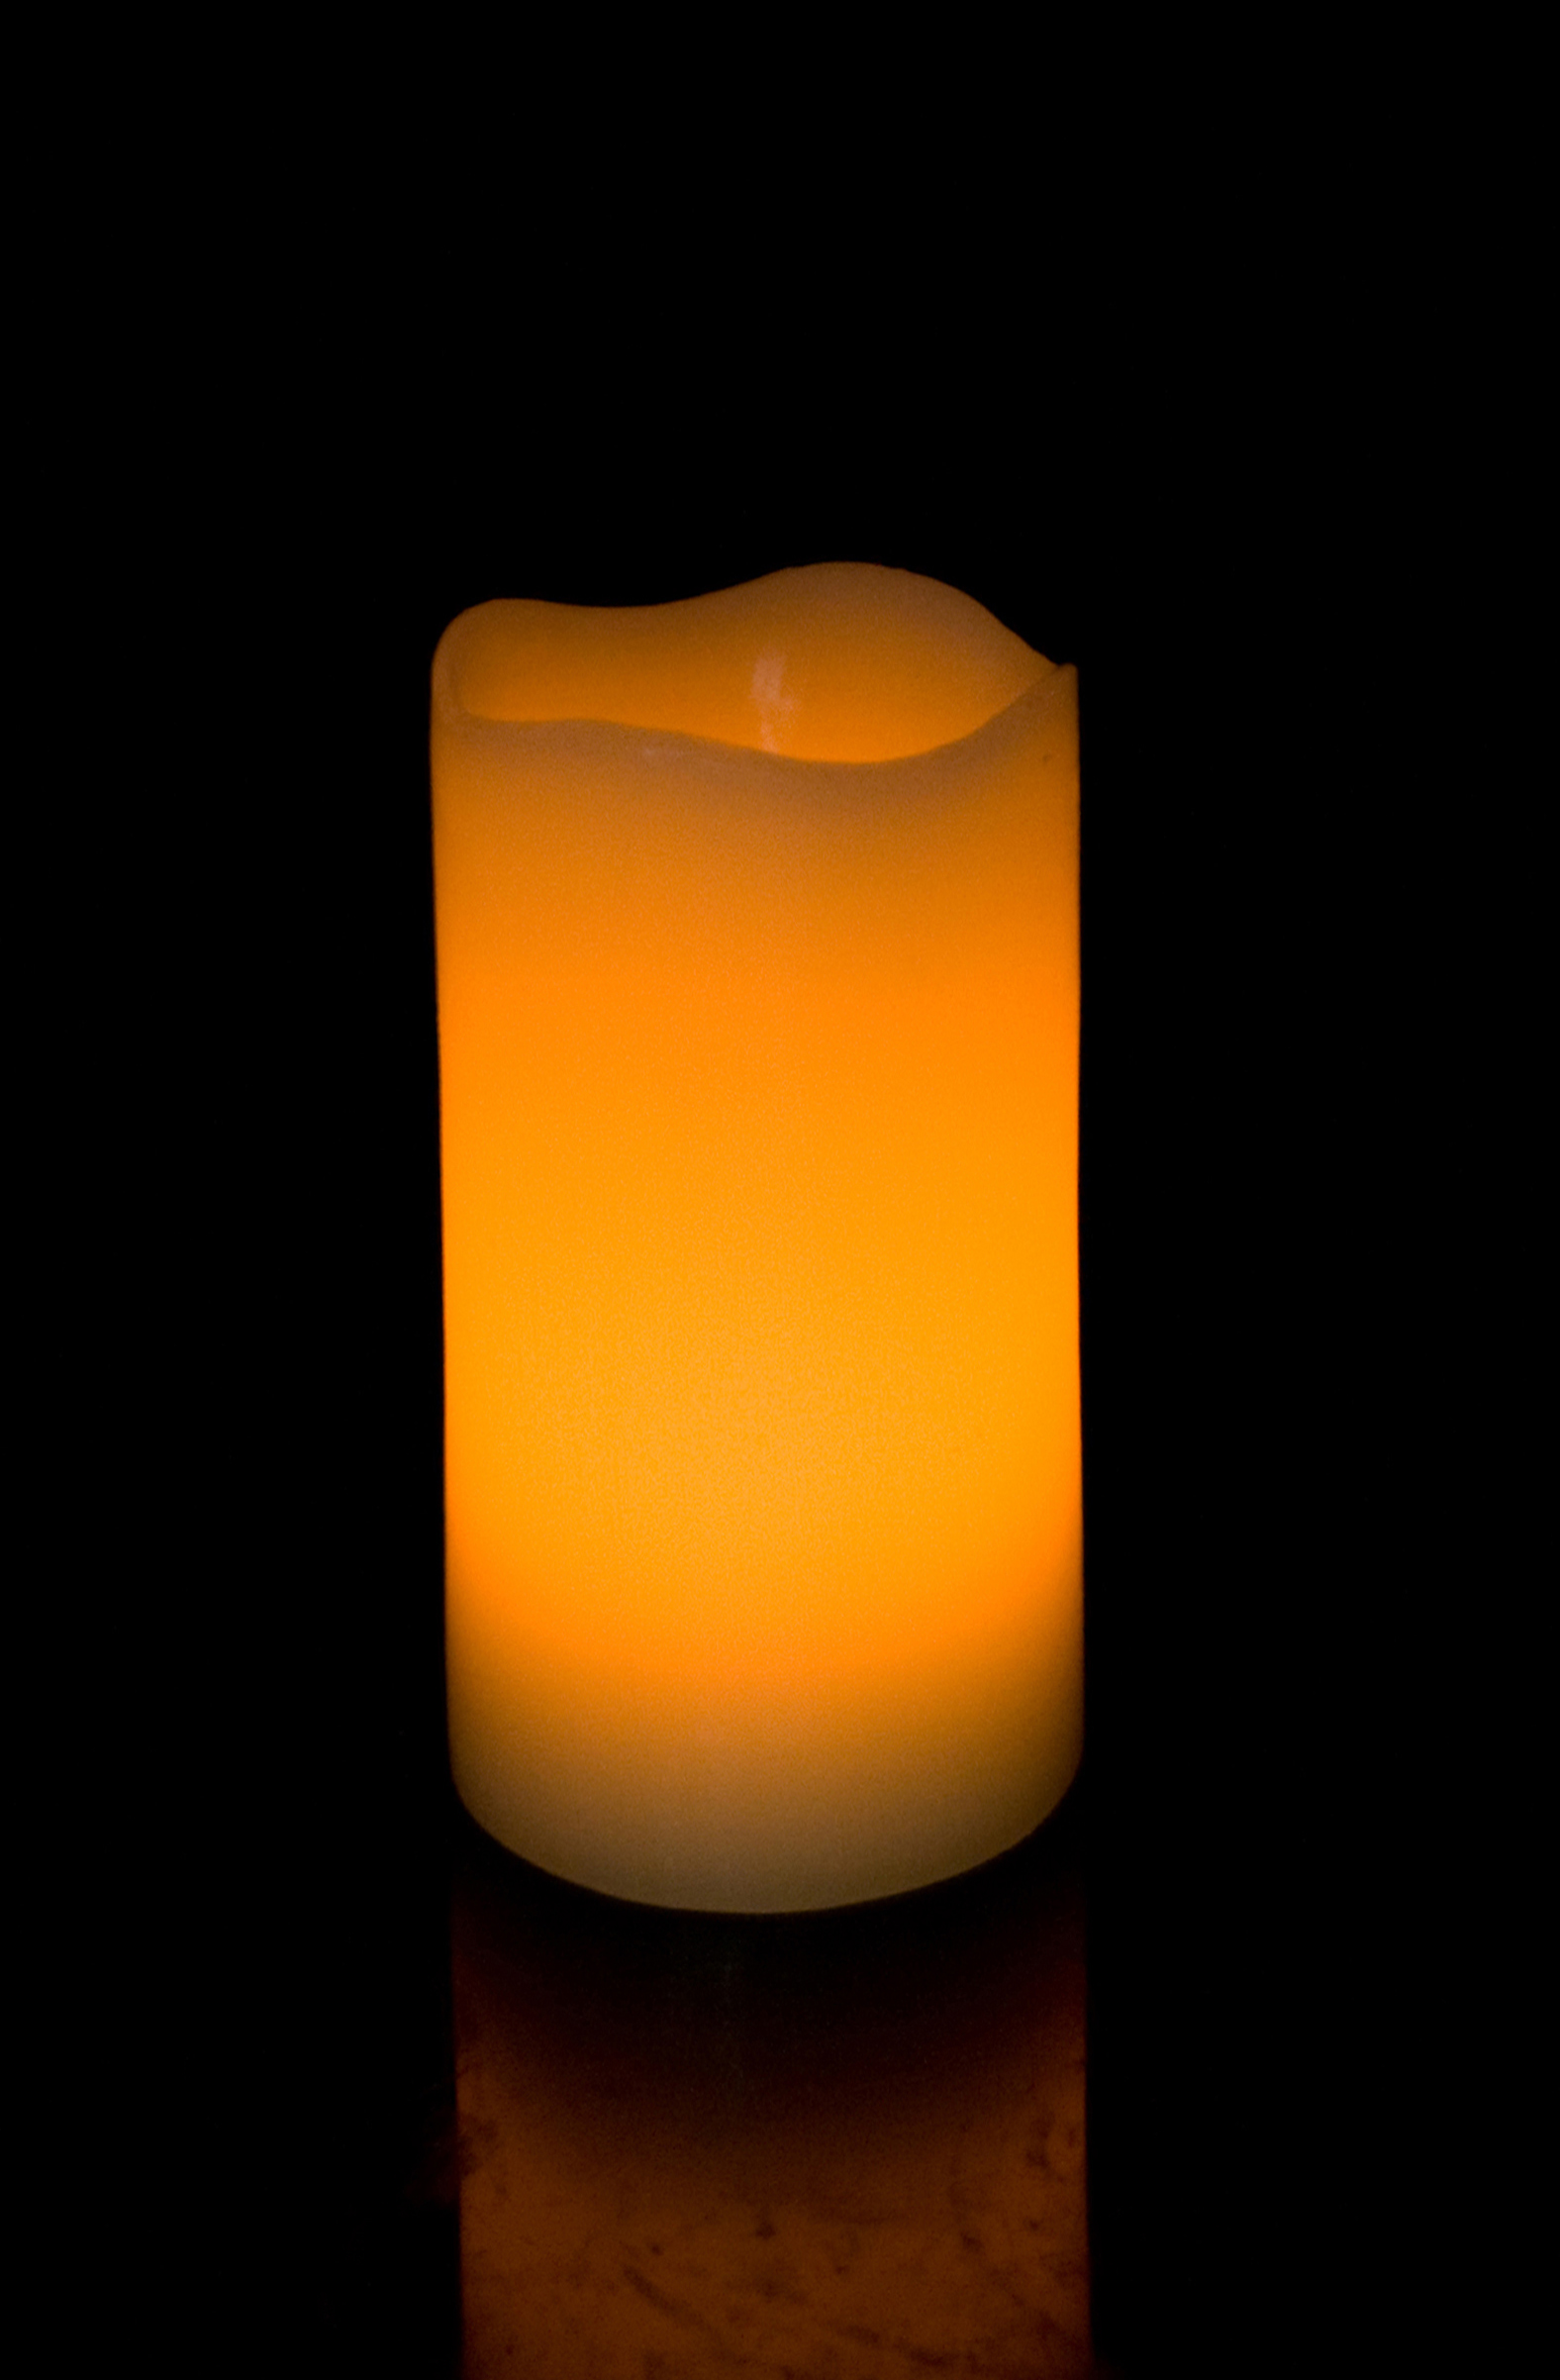 6 Inch Flameless Blow On-Off Pillar Candle - Curved Edge - Yellow